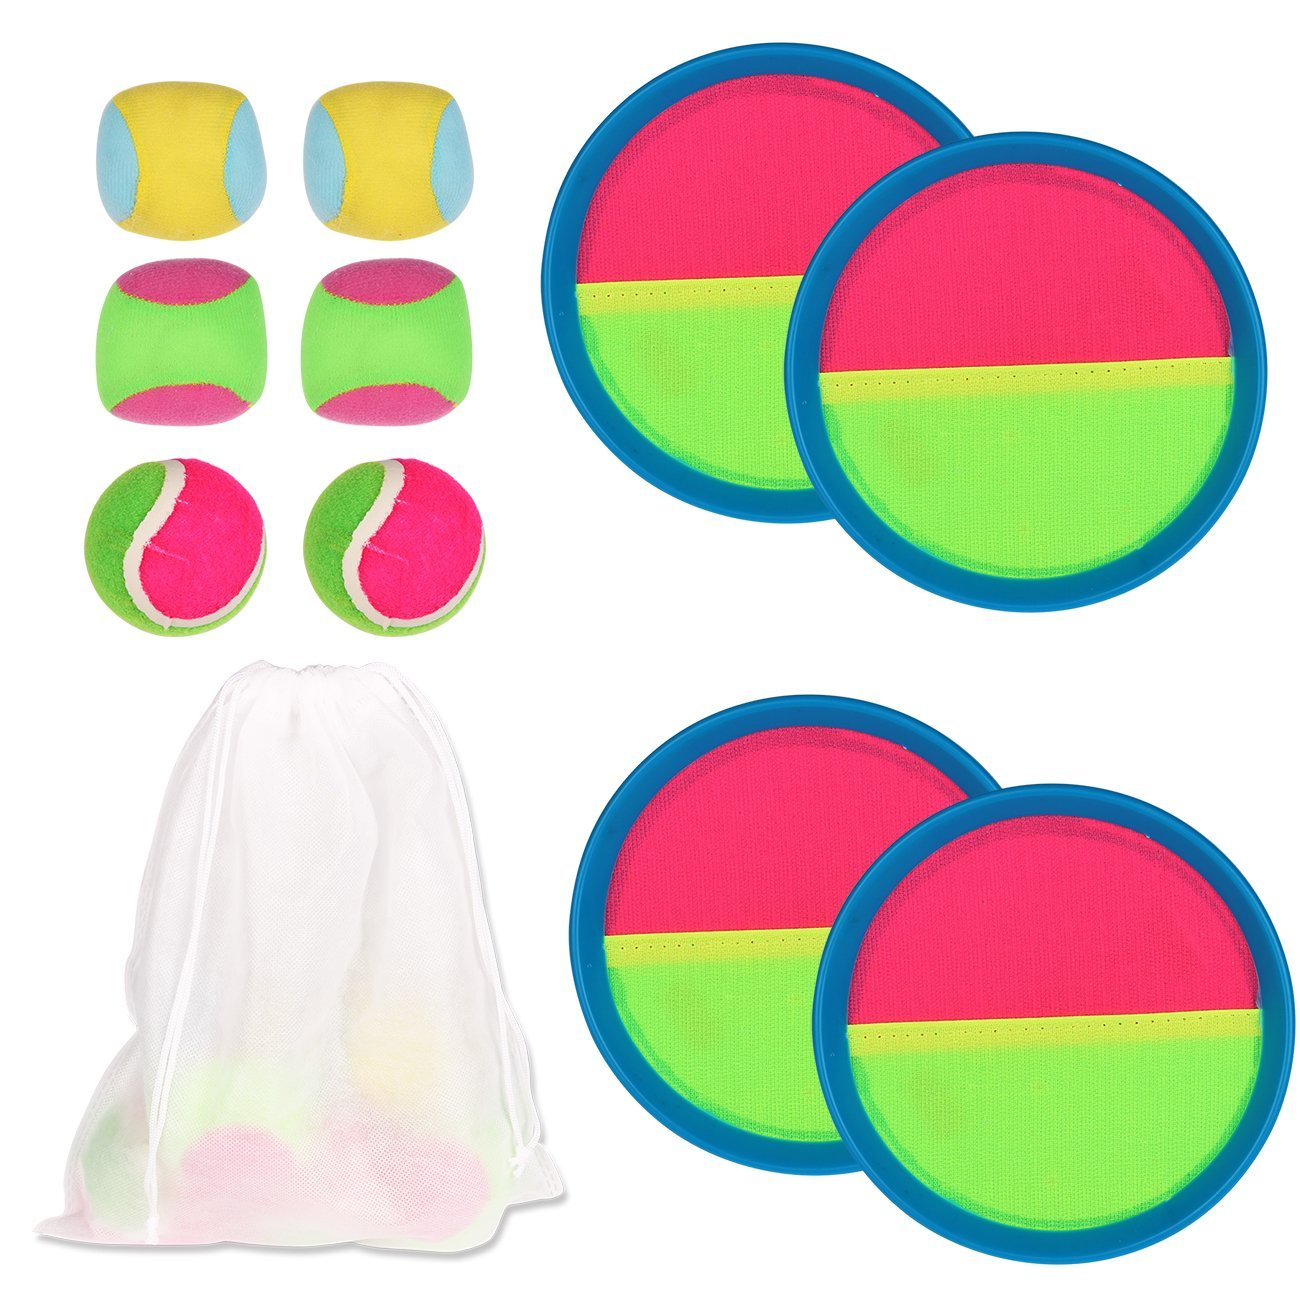 YOUTH UNION Toys Toss & Catch Paddle Game Set with Disc Paddles and Toss Ball Sport Game with Storage Bag, 4 Paddles and 6 Balls